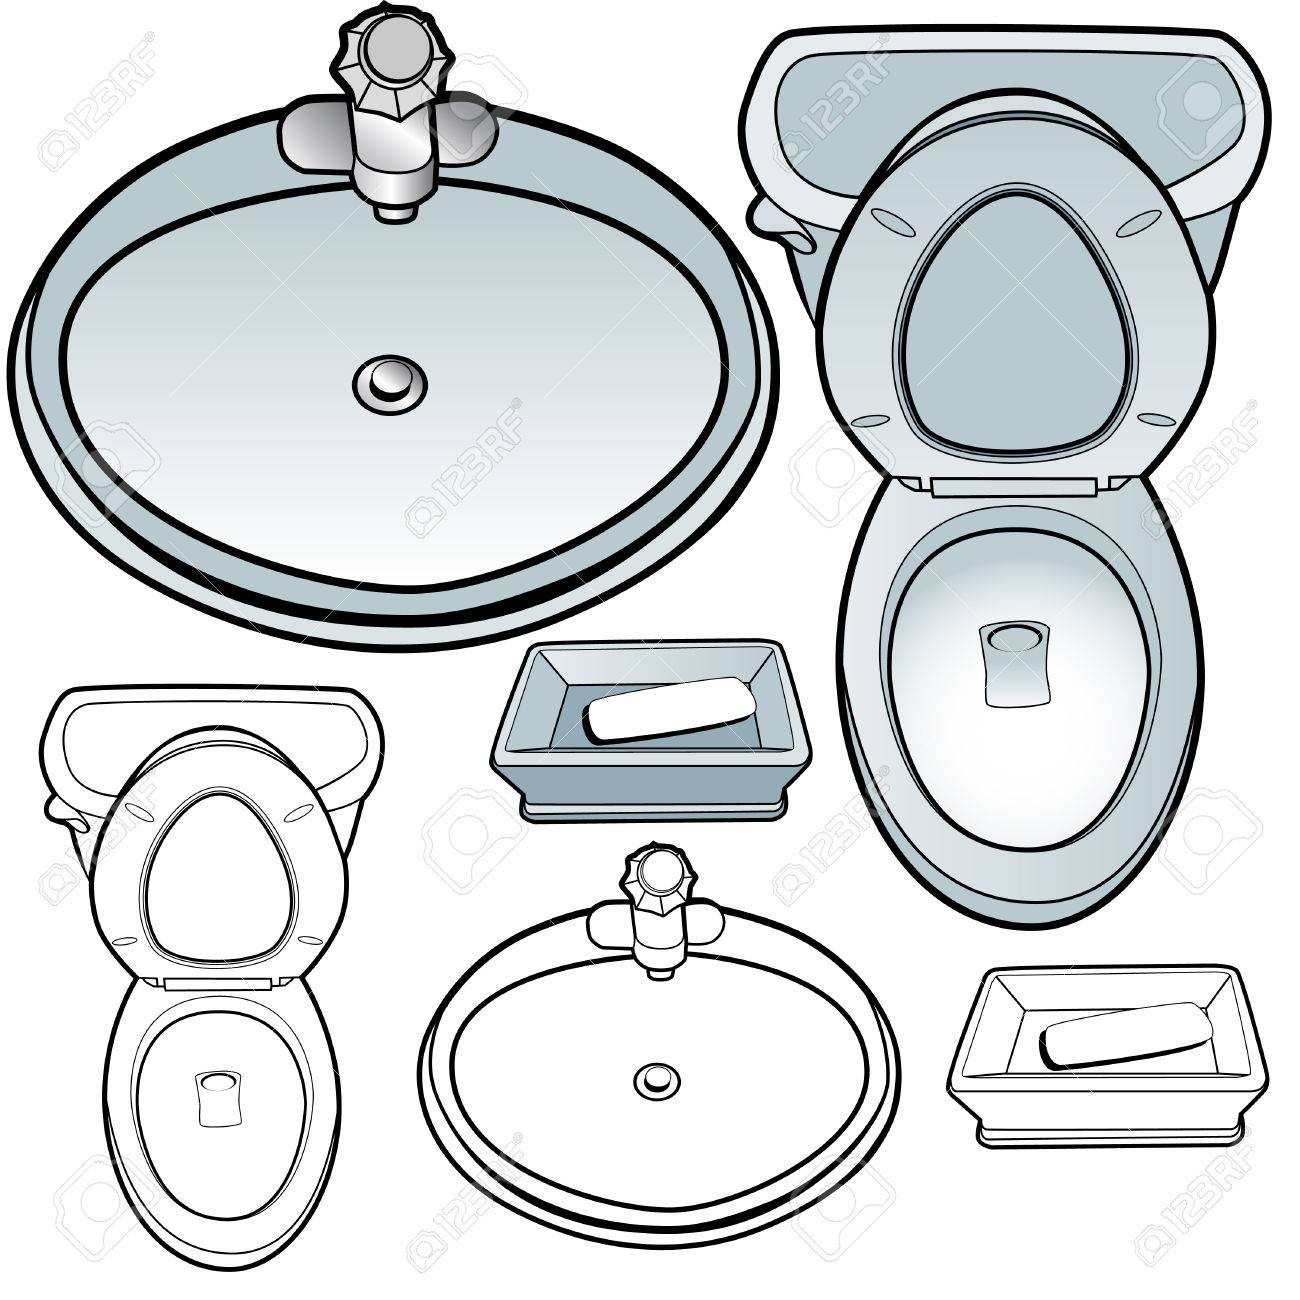 Toilet sink soapdish isolated on a white background. Stock Vector - 6288667